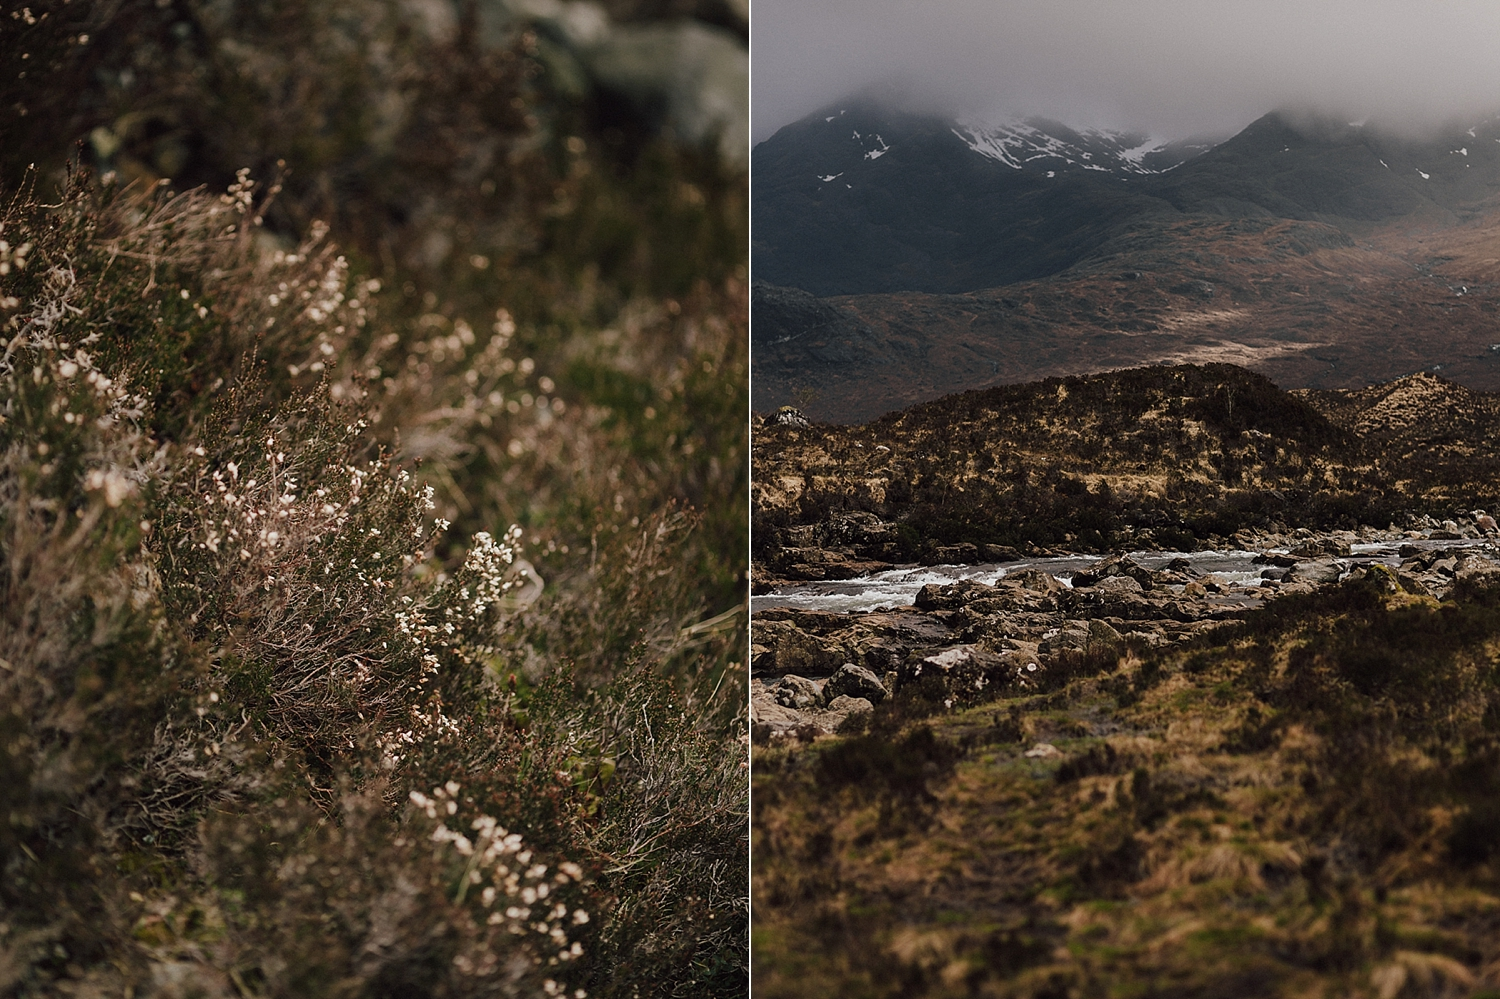 capyture-wedding-photographer-destination-elopement-isle-skye-scotland-8